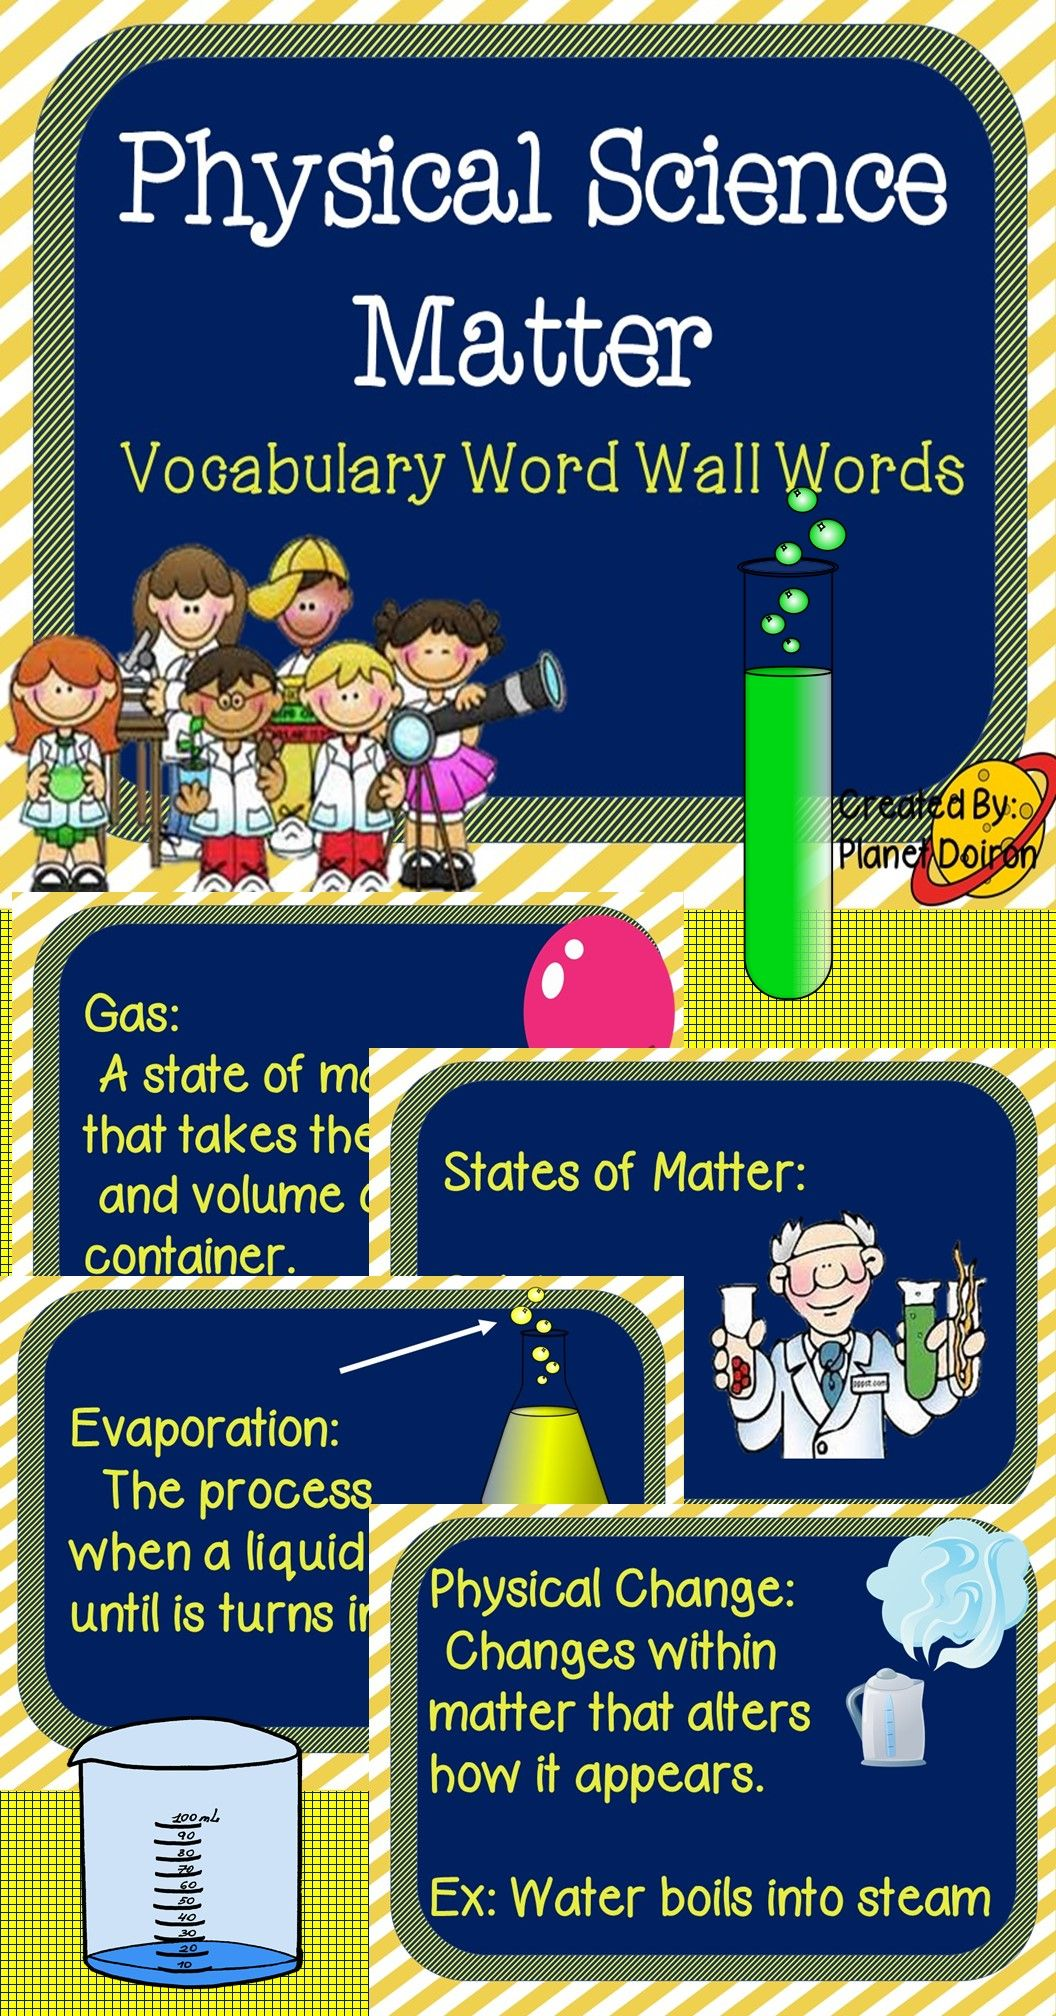 Physical Science States Of Matter Vocabulary Word Wall